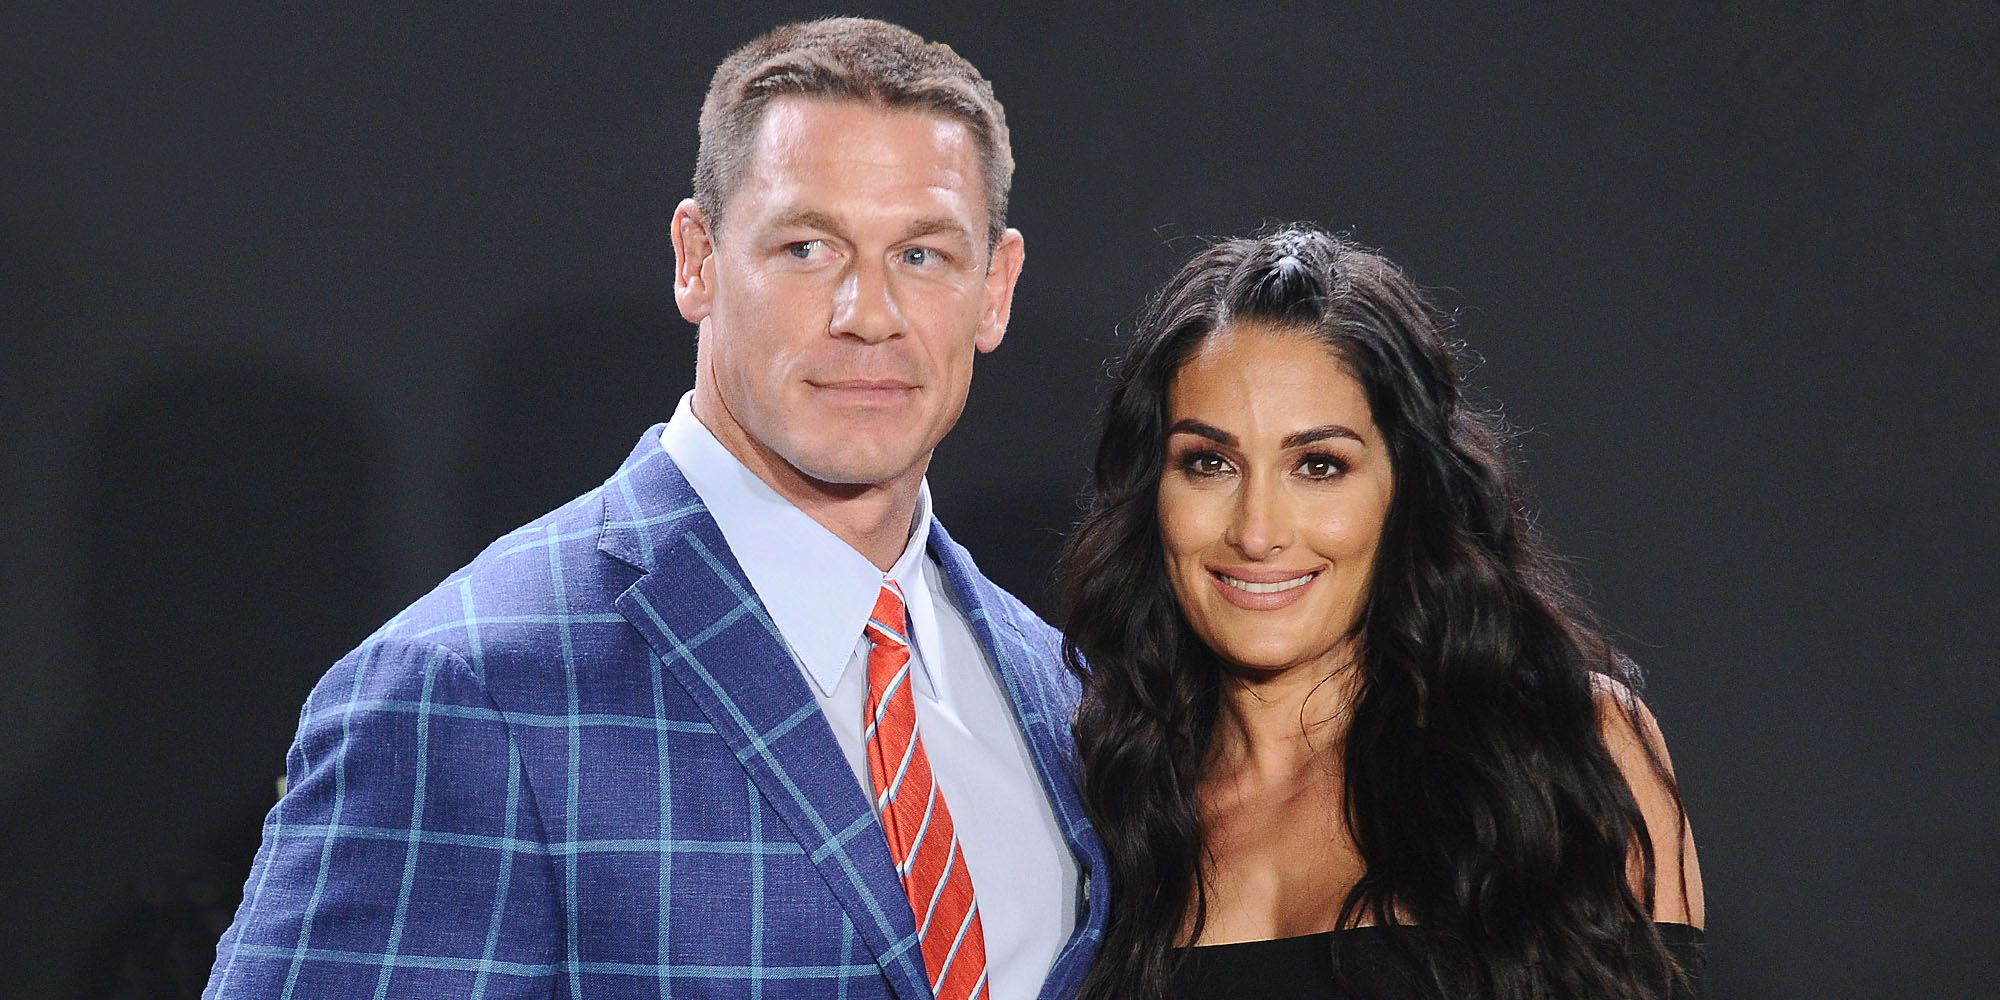 John Cena Said Hes Willing To Have Surgery To Give Nikki Bella A Child forecasting